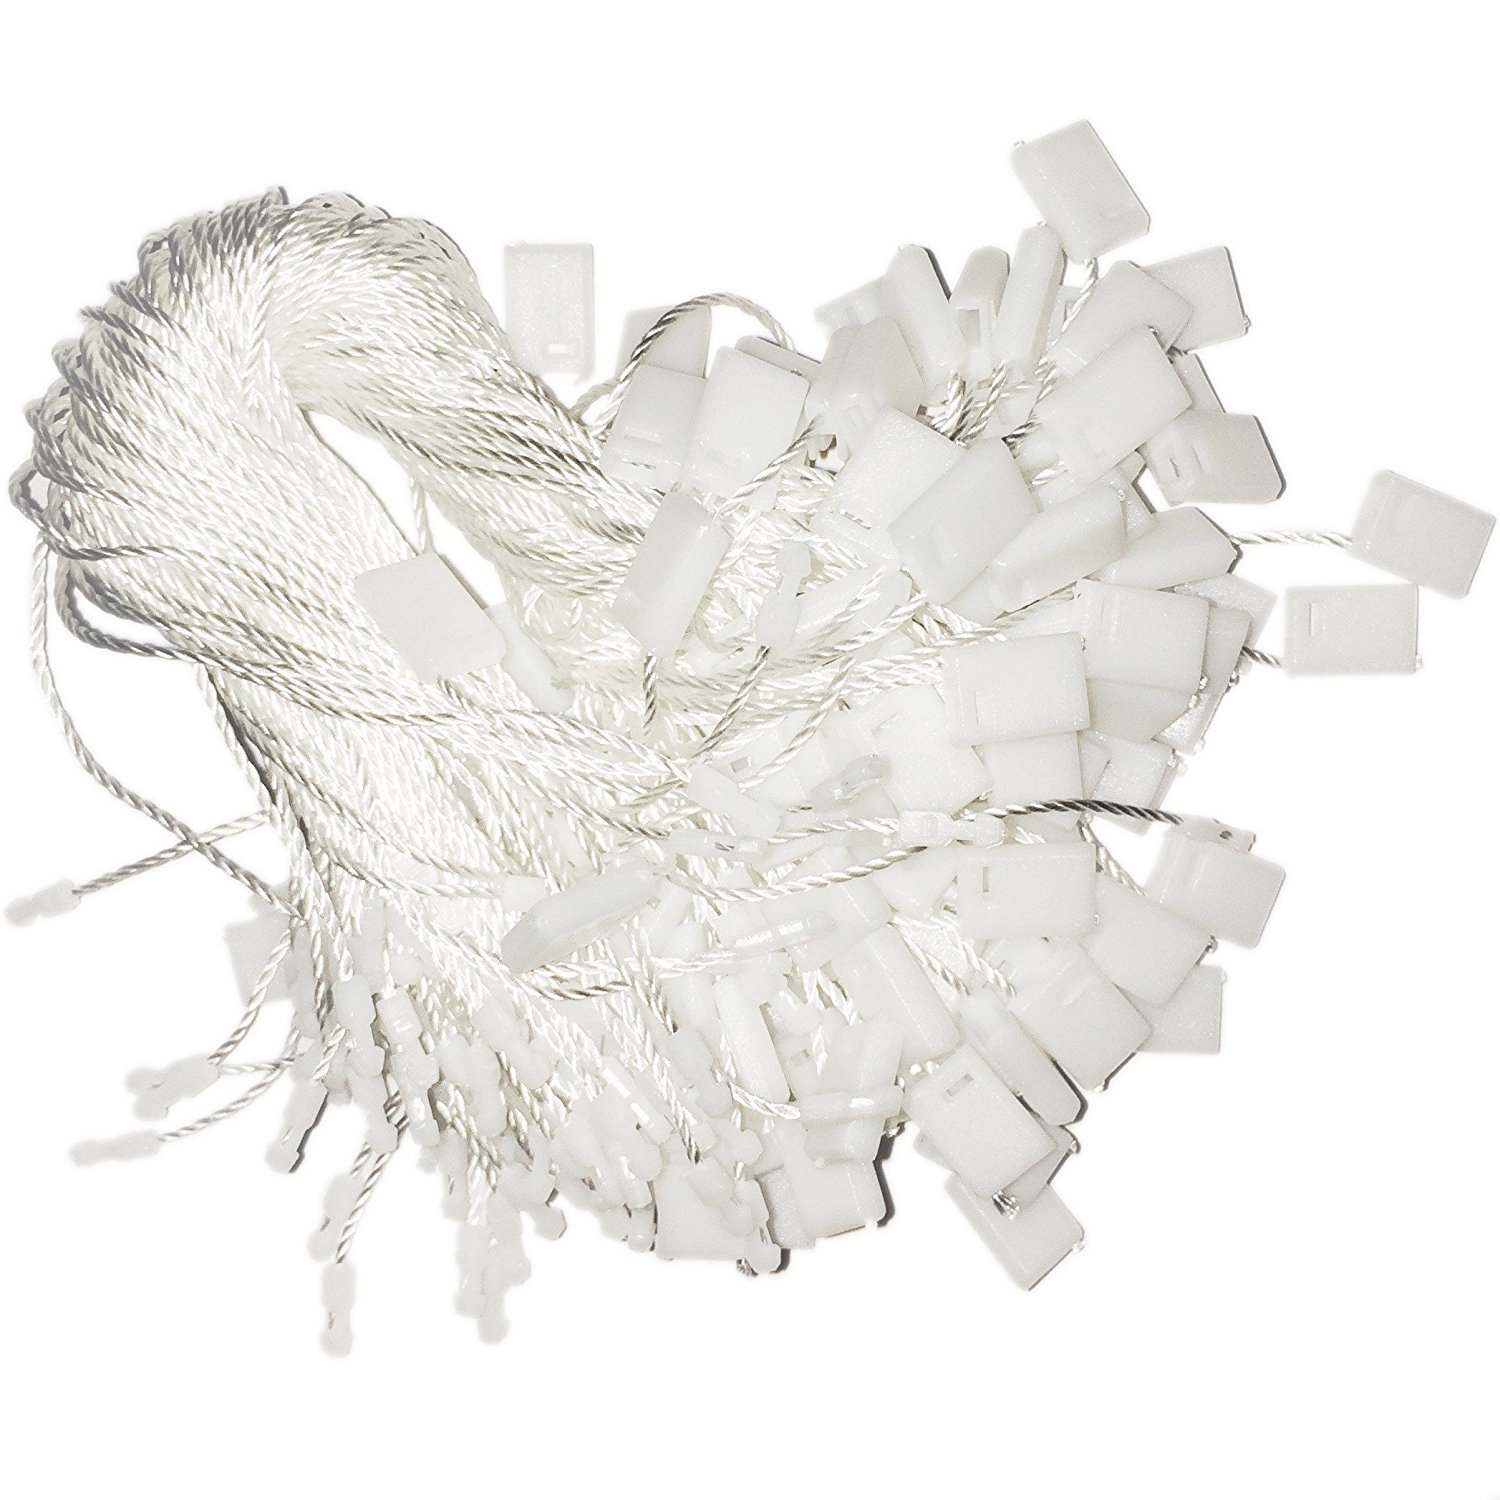 Hang Tag Fasteners - White Nylon Strings with Plastic Locker - 7'' long (3.5'' when fastened) - 500 Pieces by Retail Supply Co (Image #1)